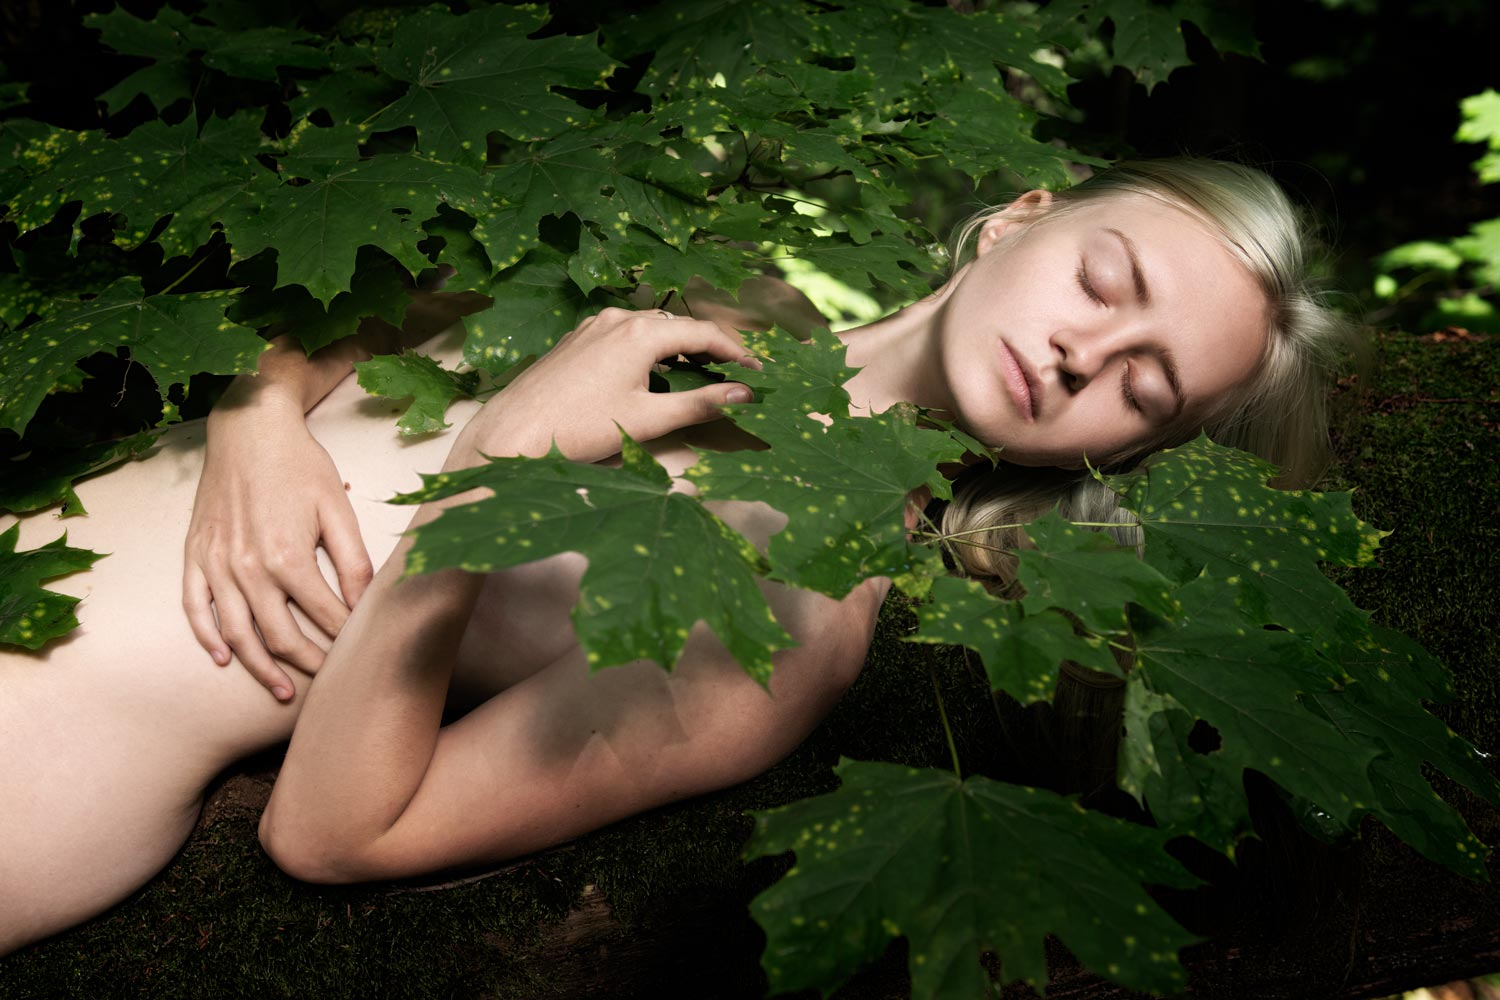 People, Female, One Person, Outdoors, Day, Nature, Leaf, Plant, Lifestyles, Beauty, Close-up, forest, mermaid, dream, sleeping, girl, lady, freshness, appeasement, young, body,, Мытник Виталий